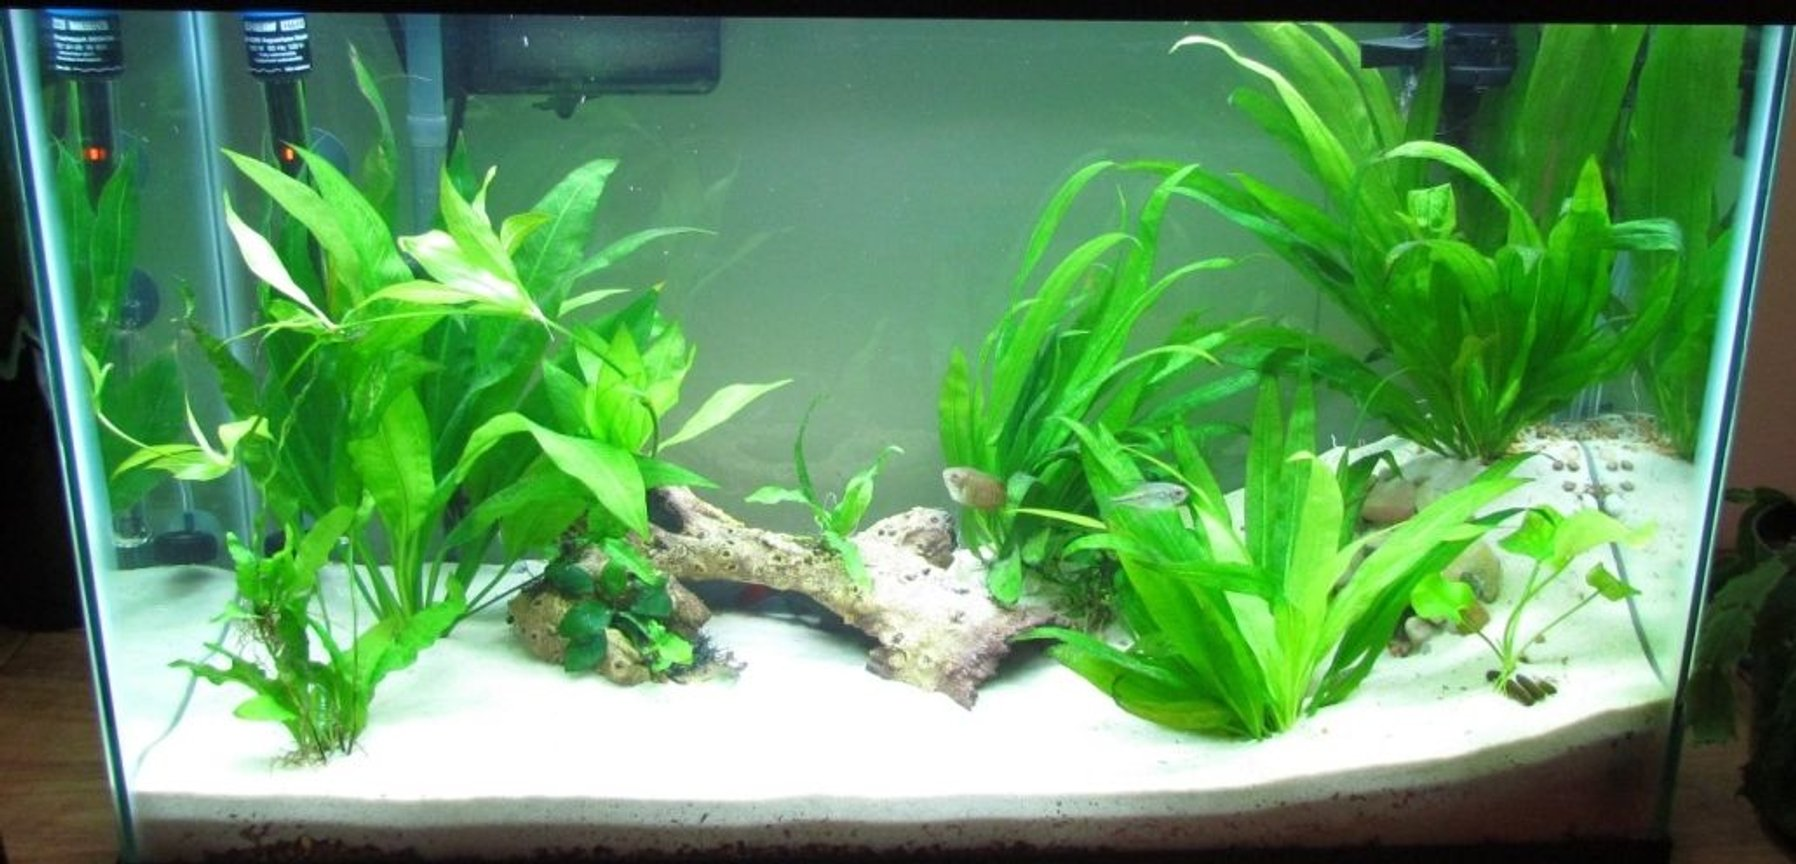 fish tank picture - 1/25/12 Update